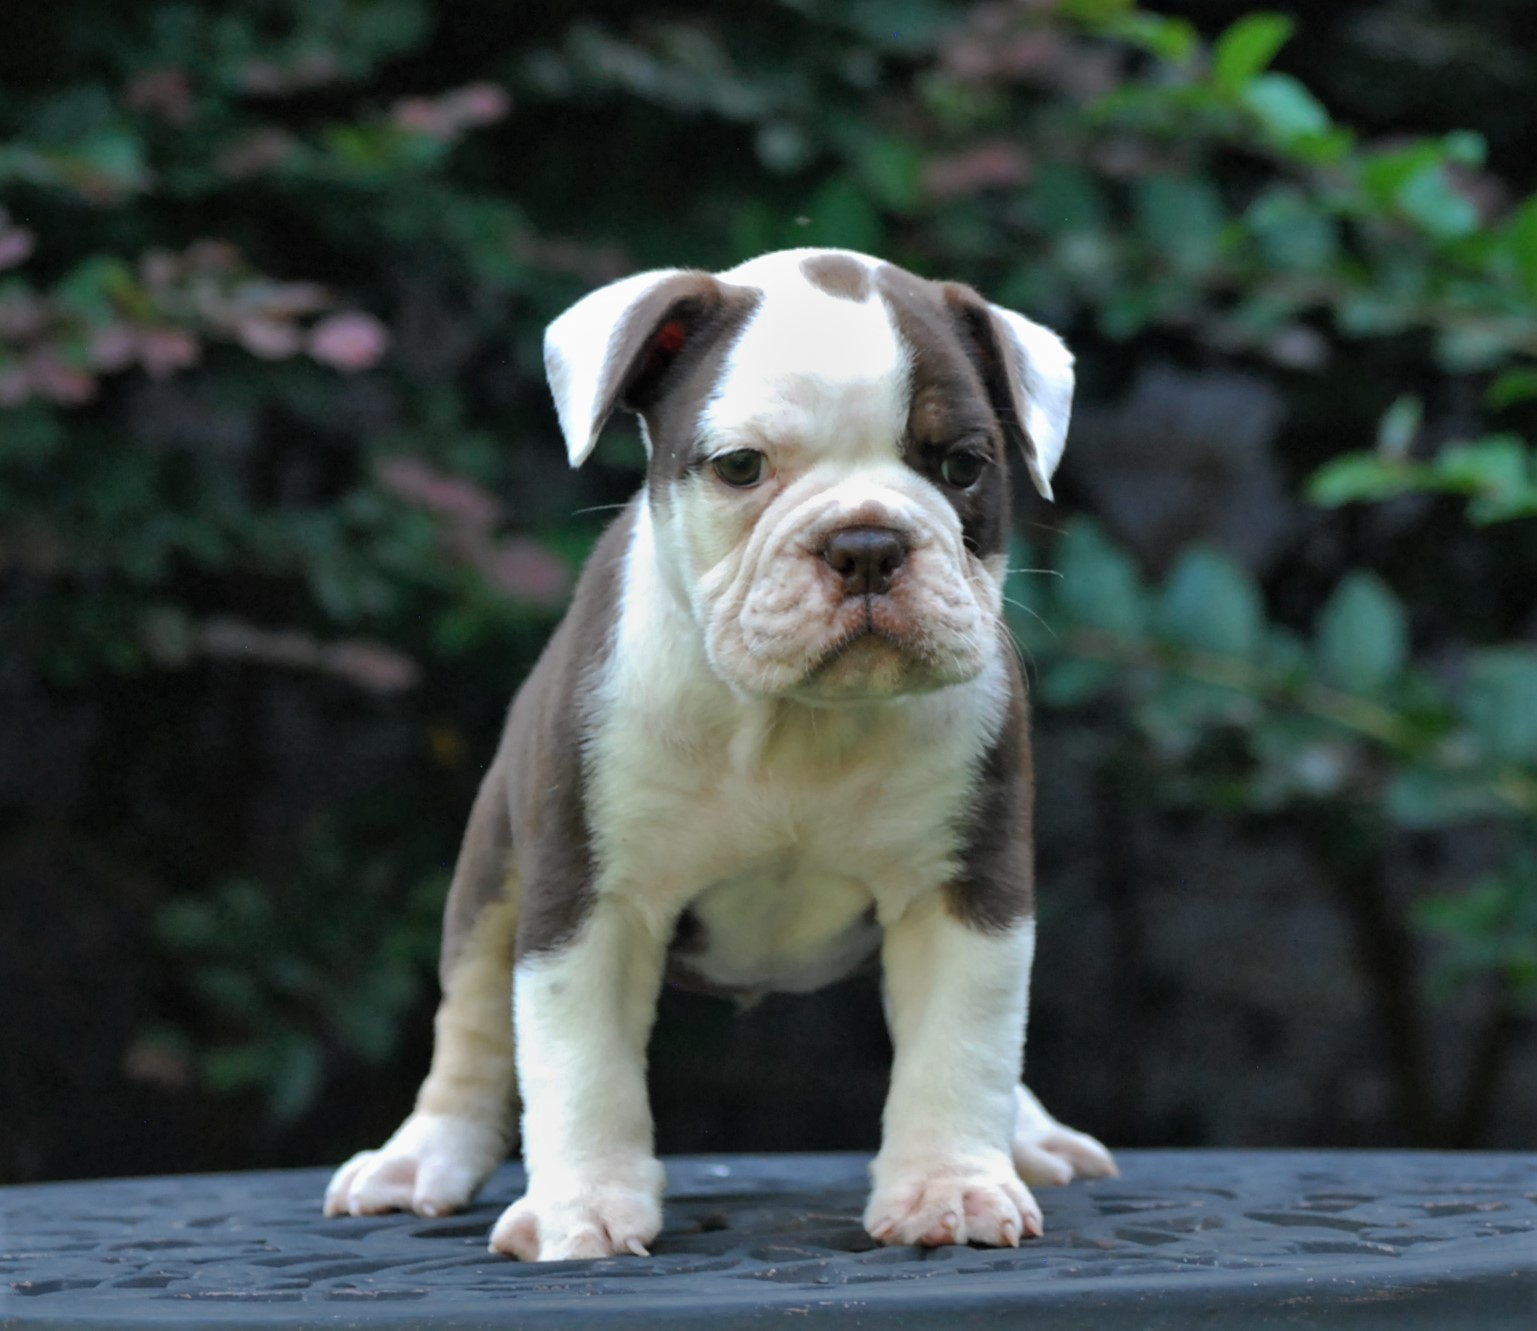 Gus Olde English Bulldogge Puppy For Sale | Photo 3